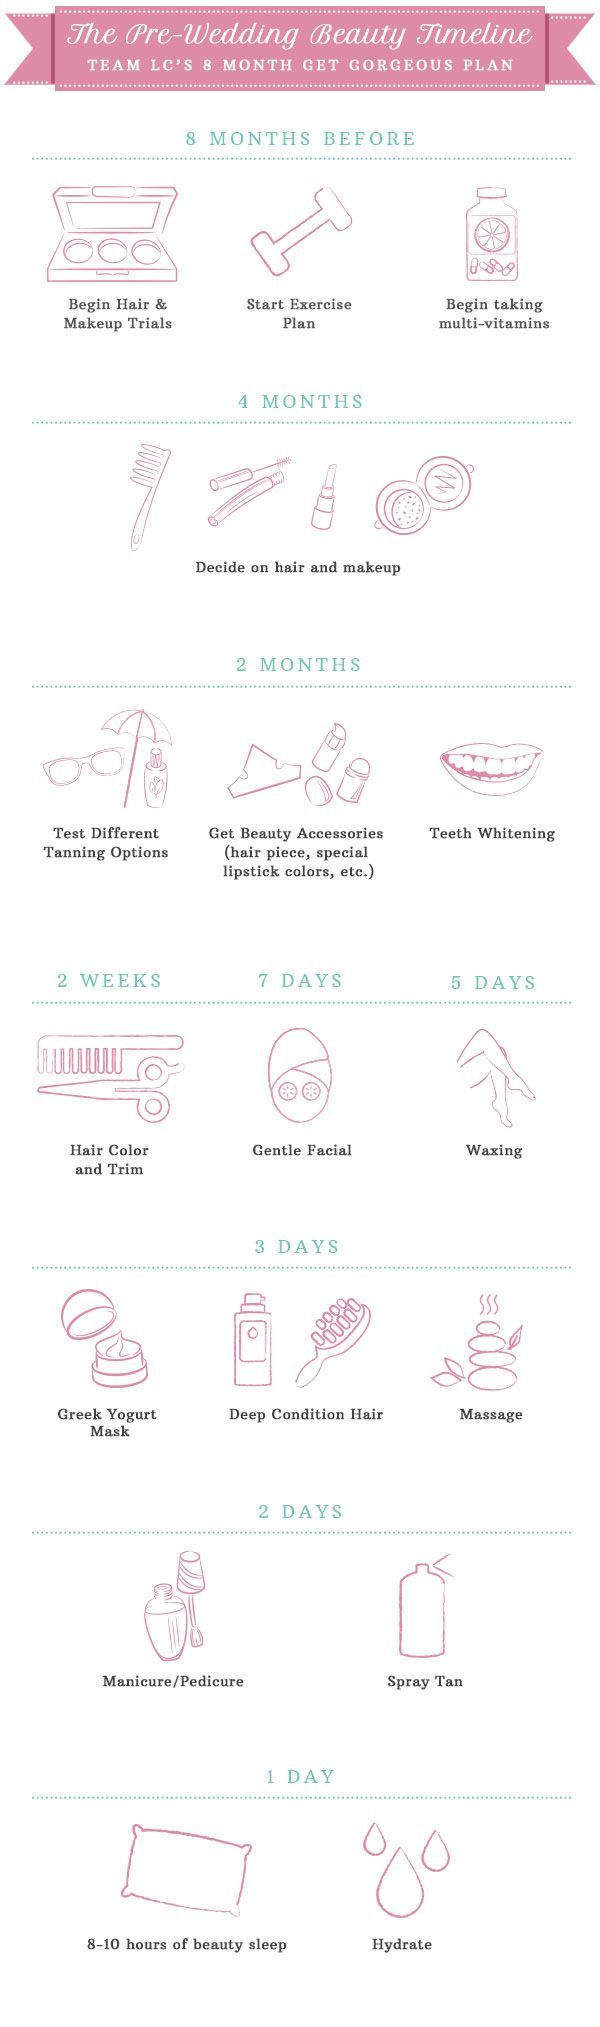 Pre-wedding prep is as important for the bridesmaids as it is for the bride. Here are a few tips and timelines.